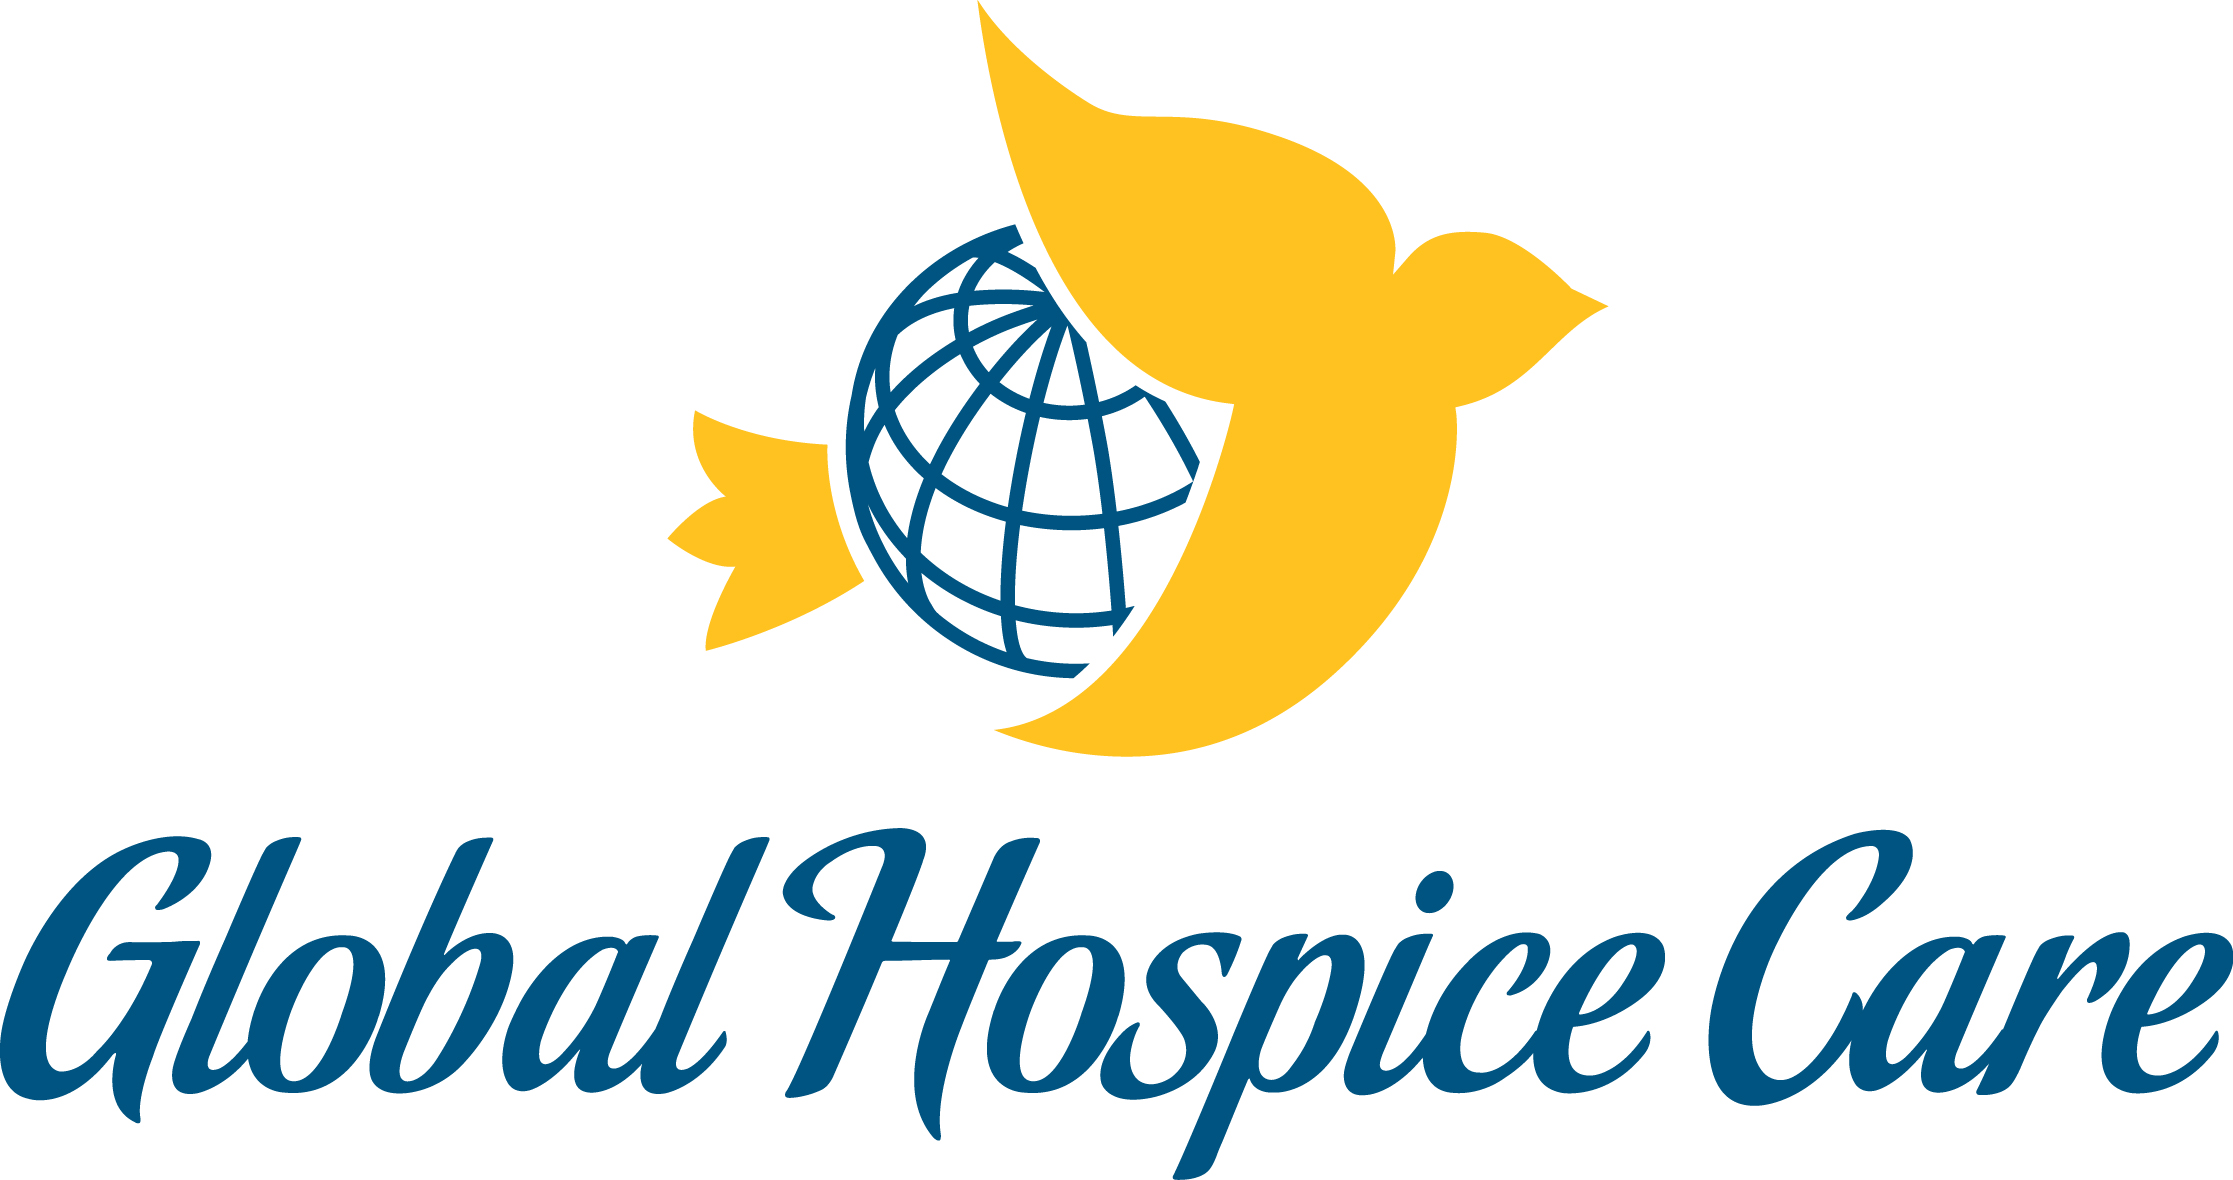 Global Hospice Care Logo